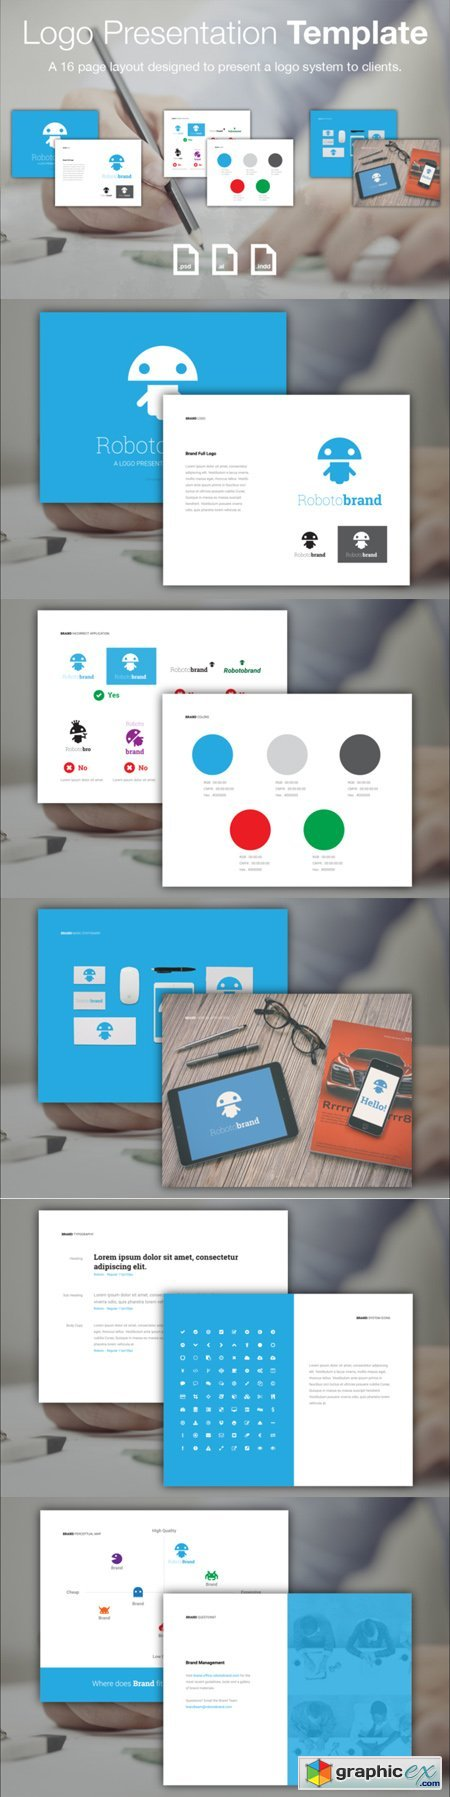 logo presentation template free download vector stock image